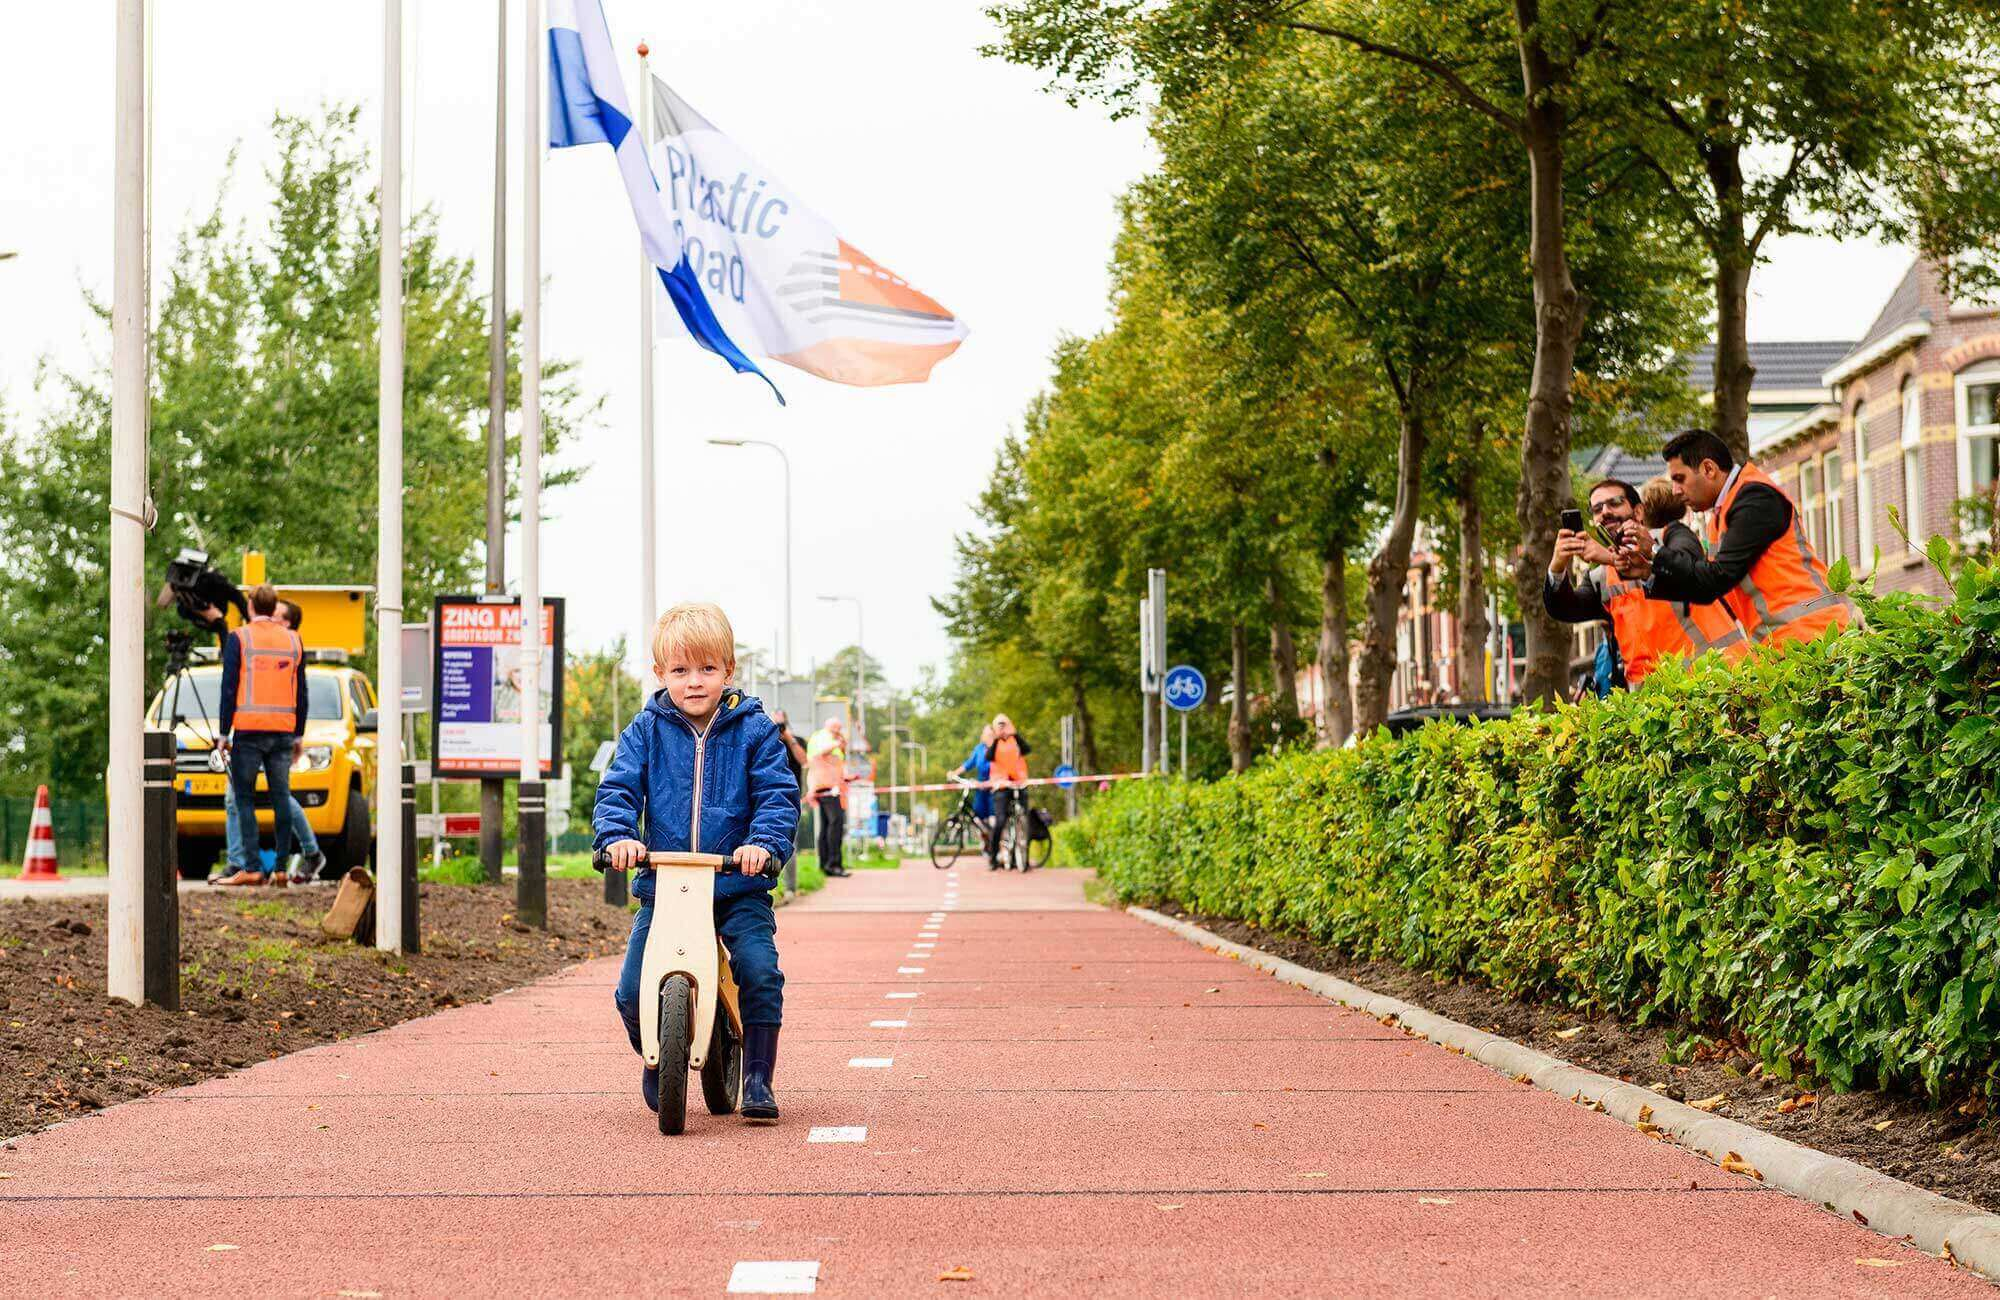 PlasticRoad has already received the Dutch Water Innovation Award, an Infratech Innovation Award, and the Cobouw Award for Product of the Year 2018.